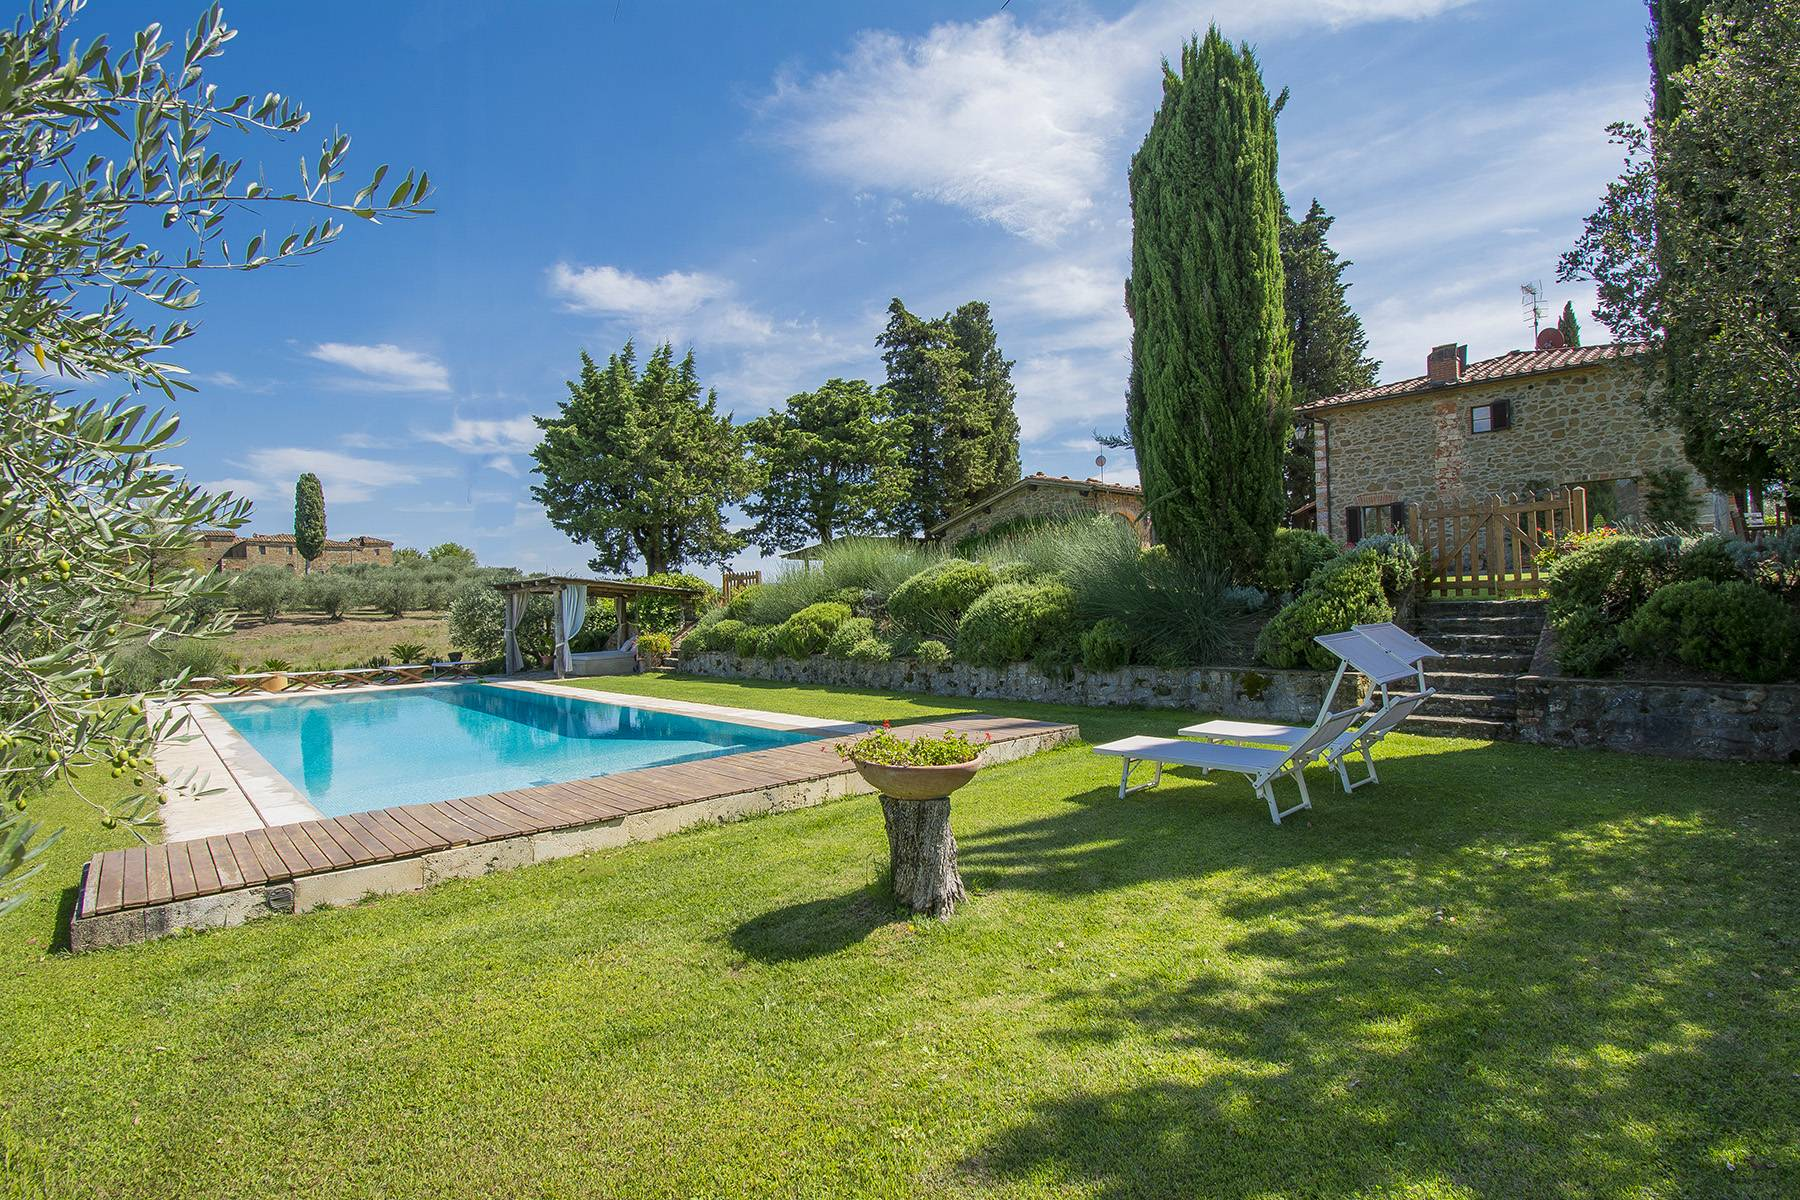 Rustic House in the Tuscan Hills for Sale - 2